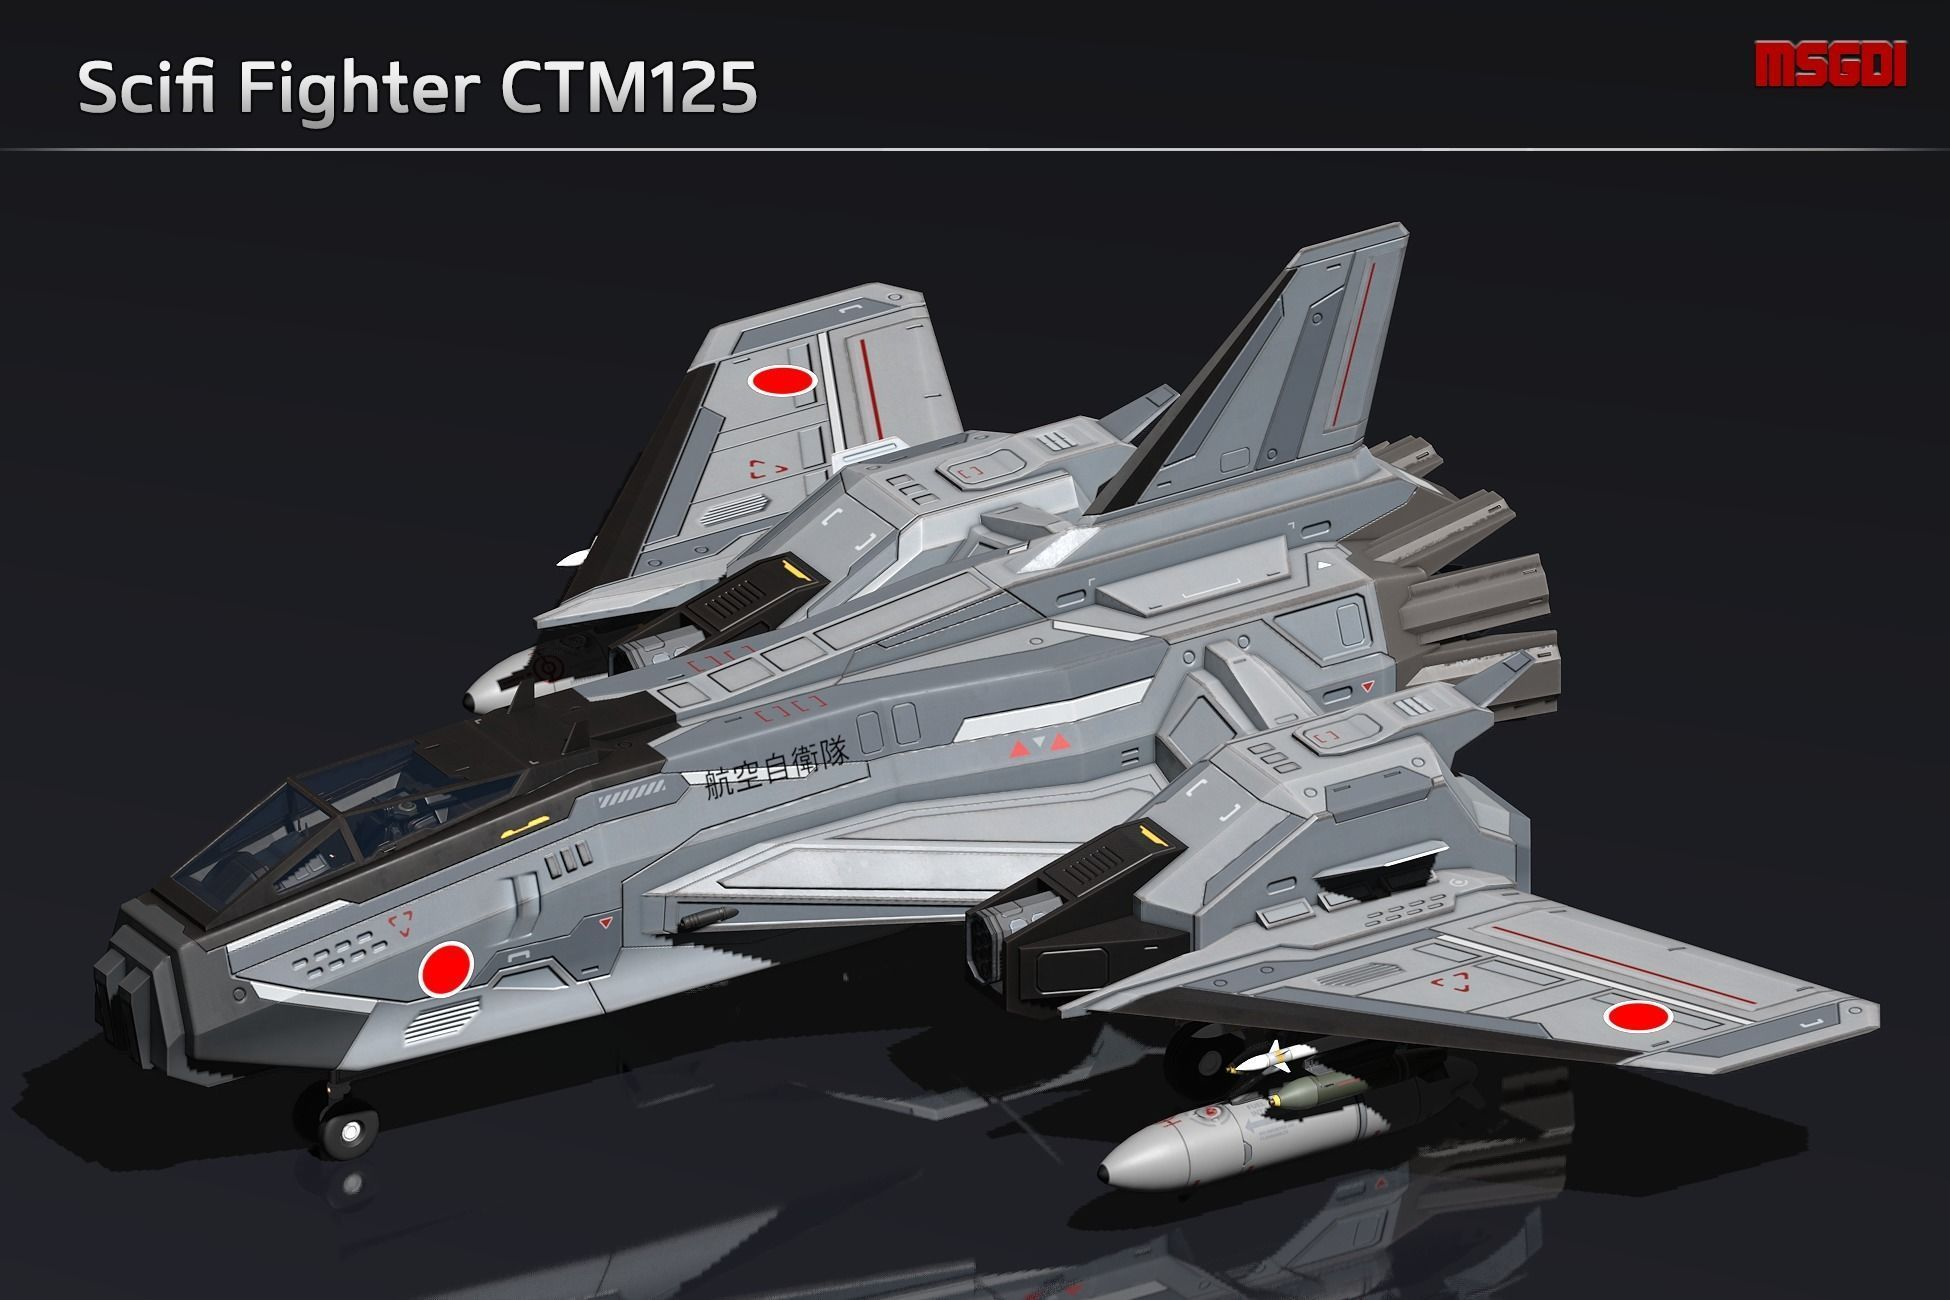 Scifi Fighter CTM125